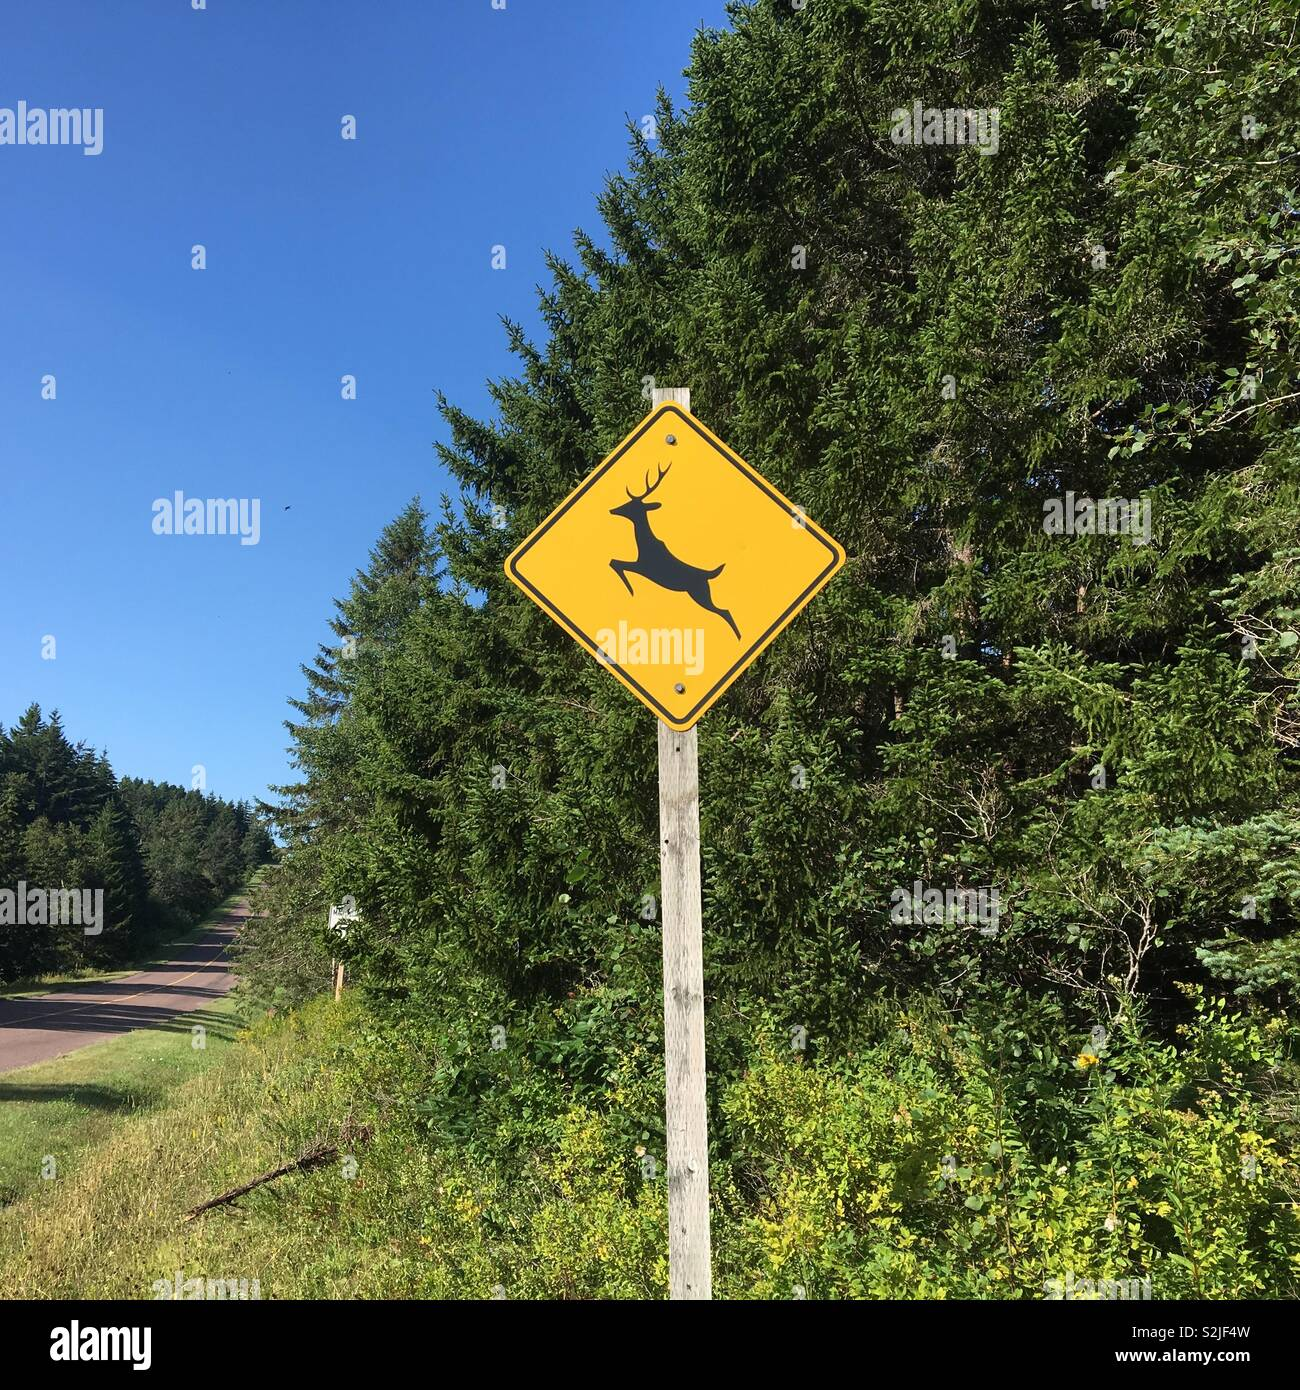 Deer warning road sign in Canada Stock Photo